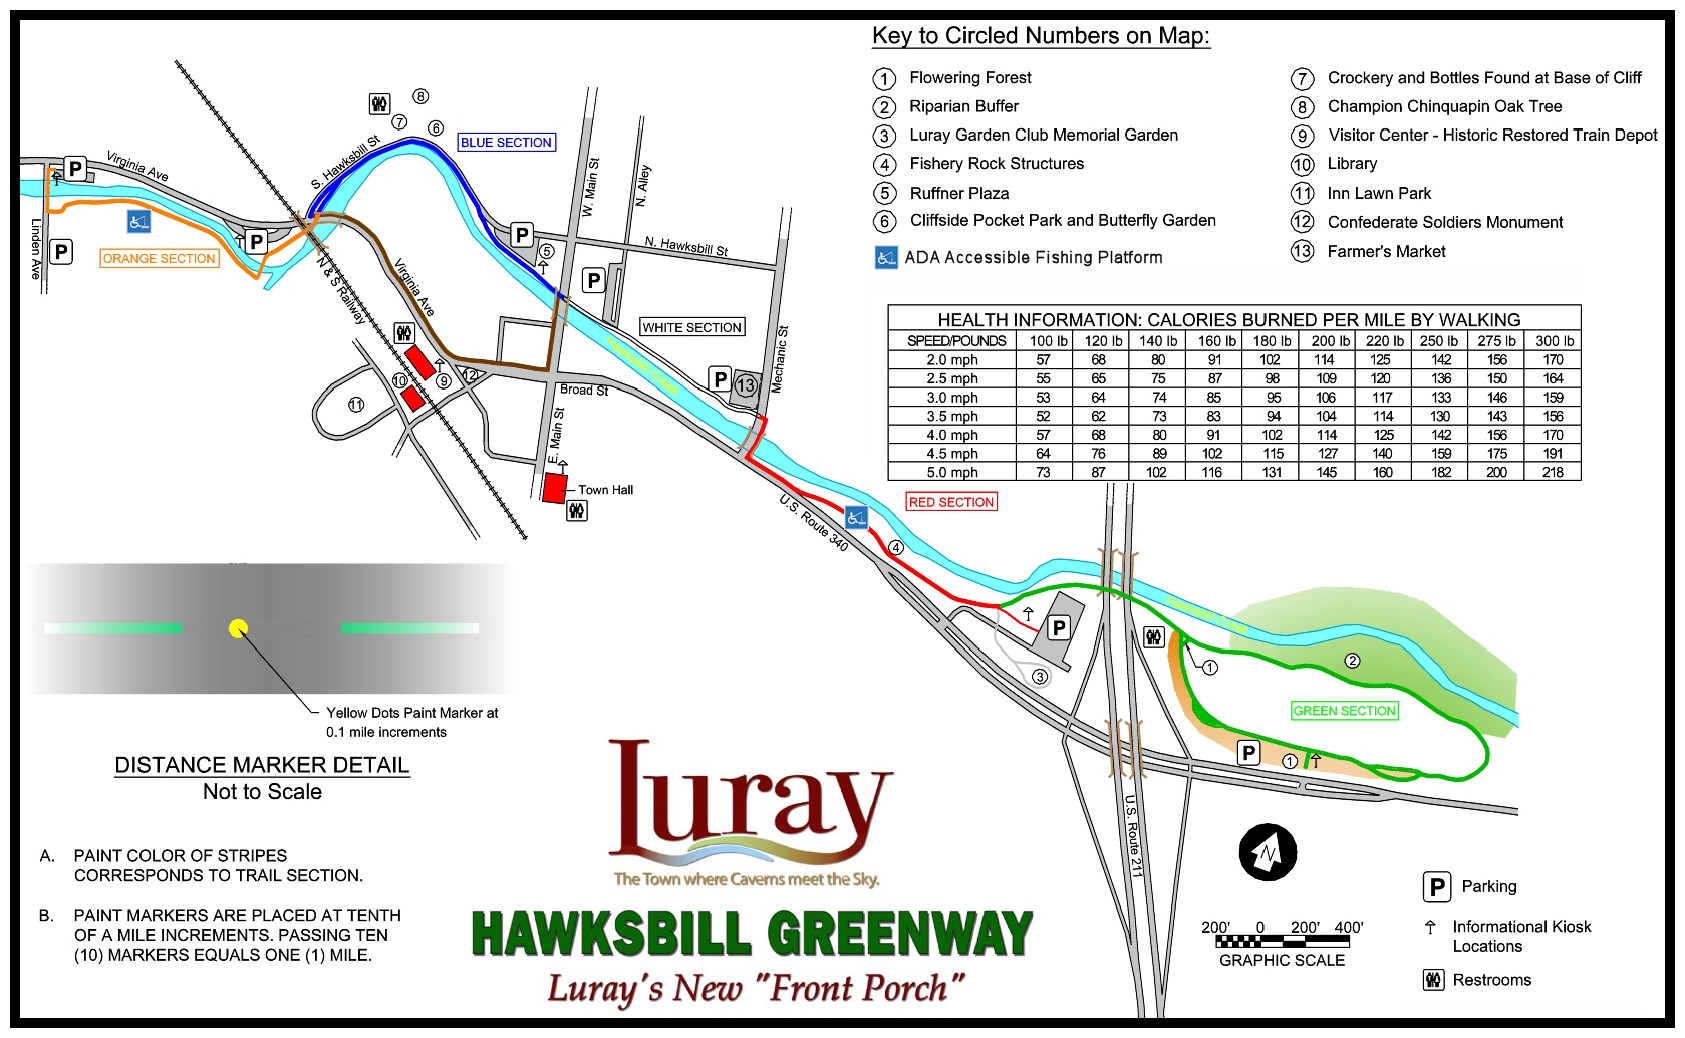 illustration Luray Hawksbill Greenway Trail Map - Click to view full size image